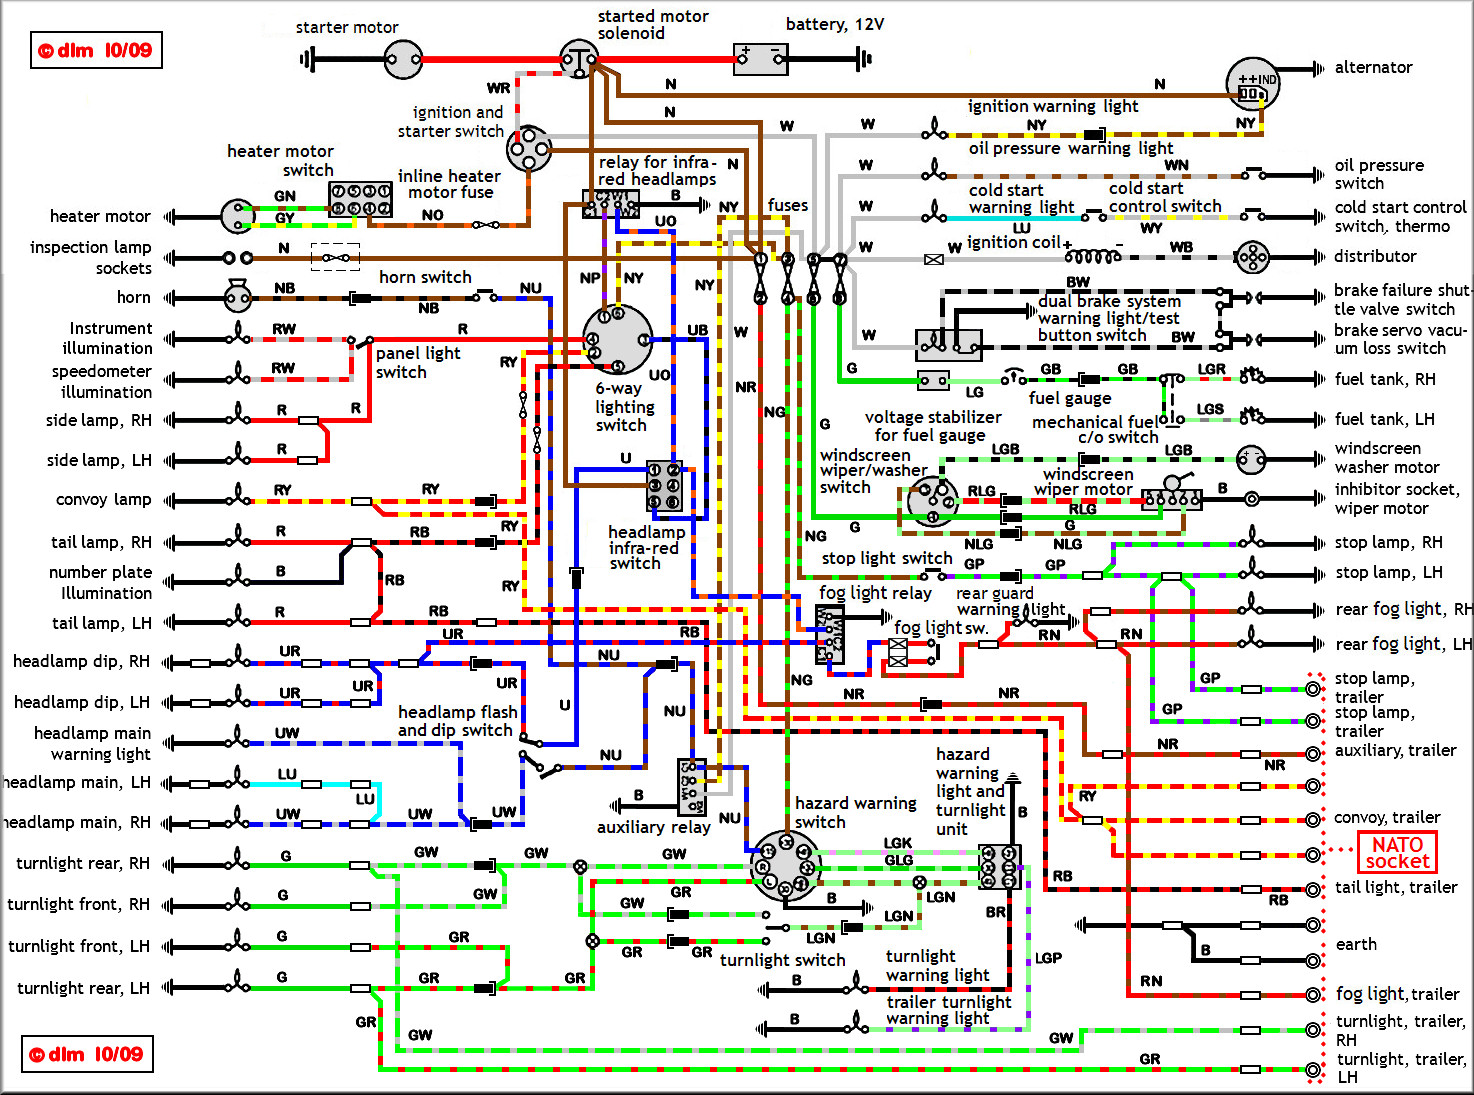 mine 12V circuitNewA 300tdi wiring diagram chinese 110 atv wiring diagram \u2022 free wiring 300tdi discovery as10 wiring diagram at webbmarketing.co